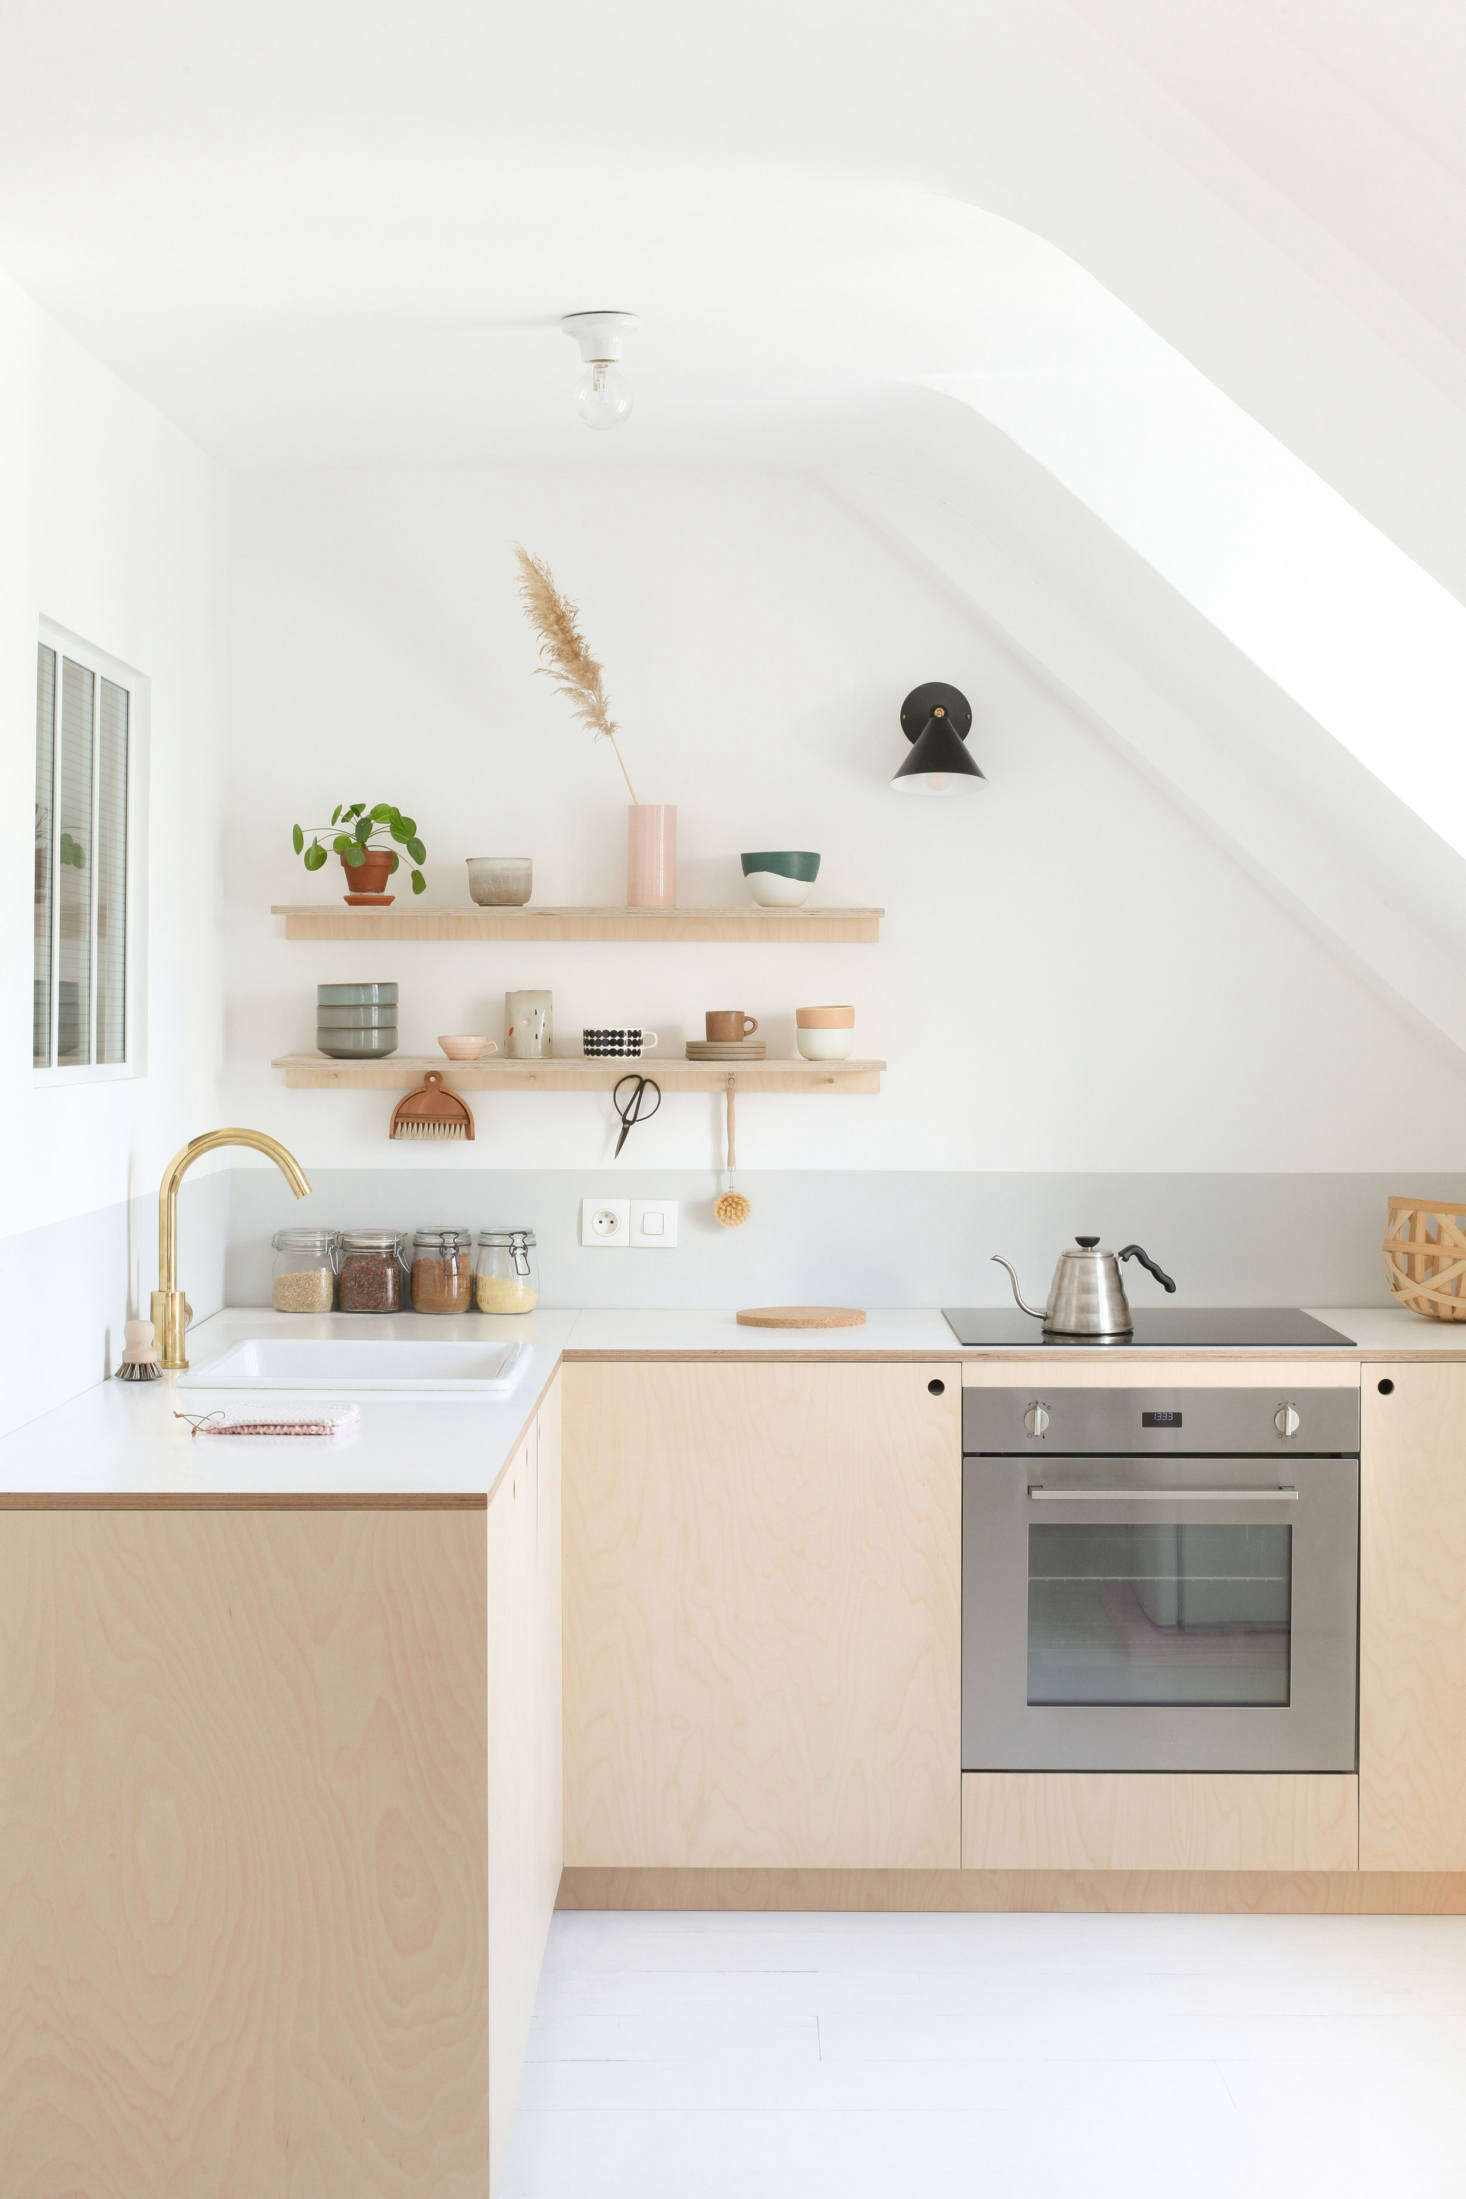 Architect couple Hélène Pinaud and Julien Schwartzmann of Heju created the kitchen in their 538-square-foot garret near Place de la Republic in Paris. See more fromKitchen of the Week: Two Young Paris Architects Completely Redo Their Kitchen for Under $4,300.